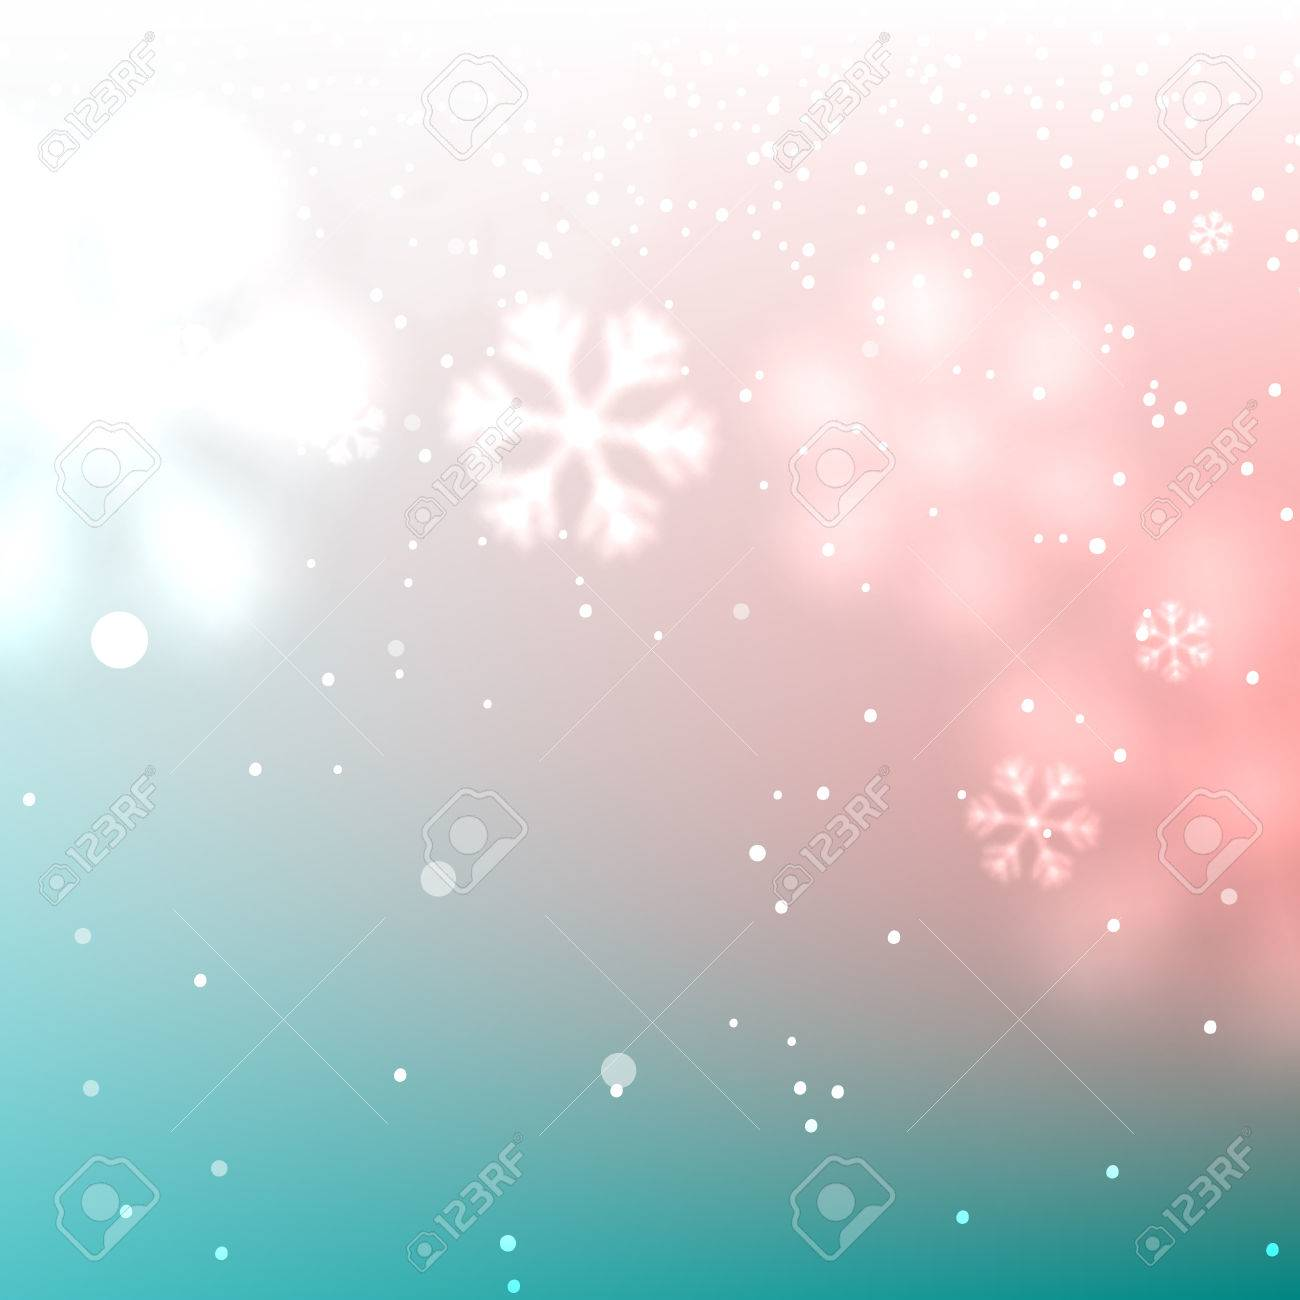 snowy blurred beautiful vector background winter snowflake snowy blurred beautiful vector background winter snowflake template for poster invitation card or flyer